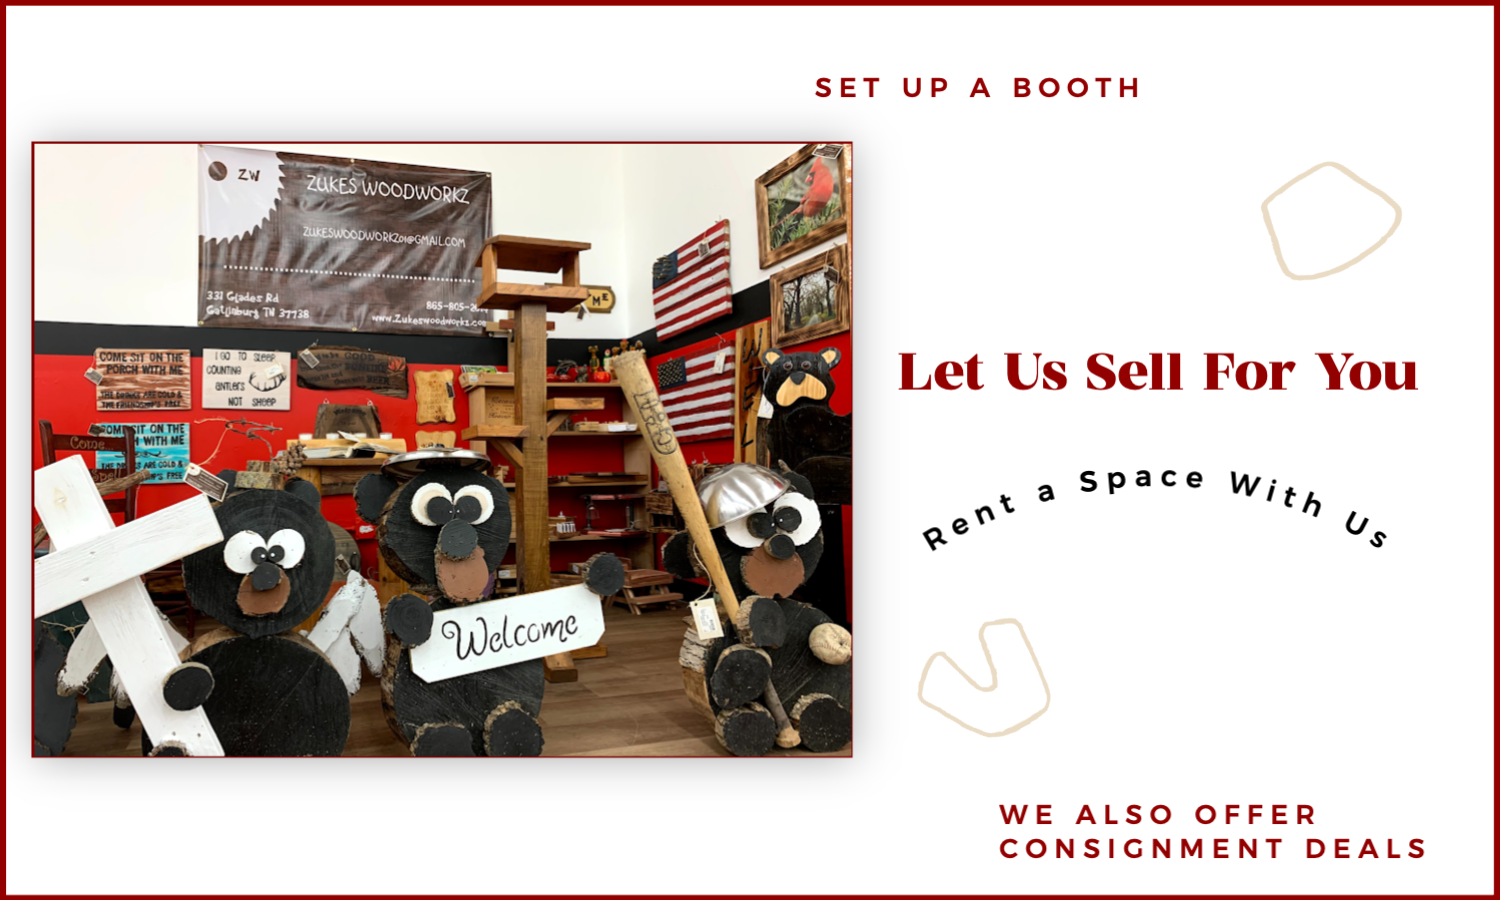 Let us sell for you 4